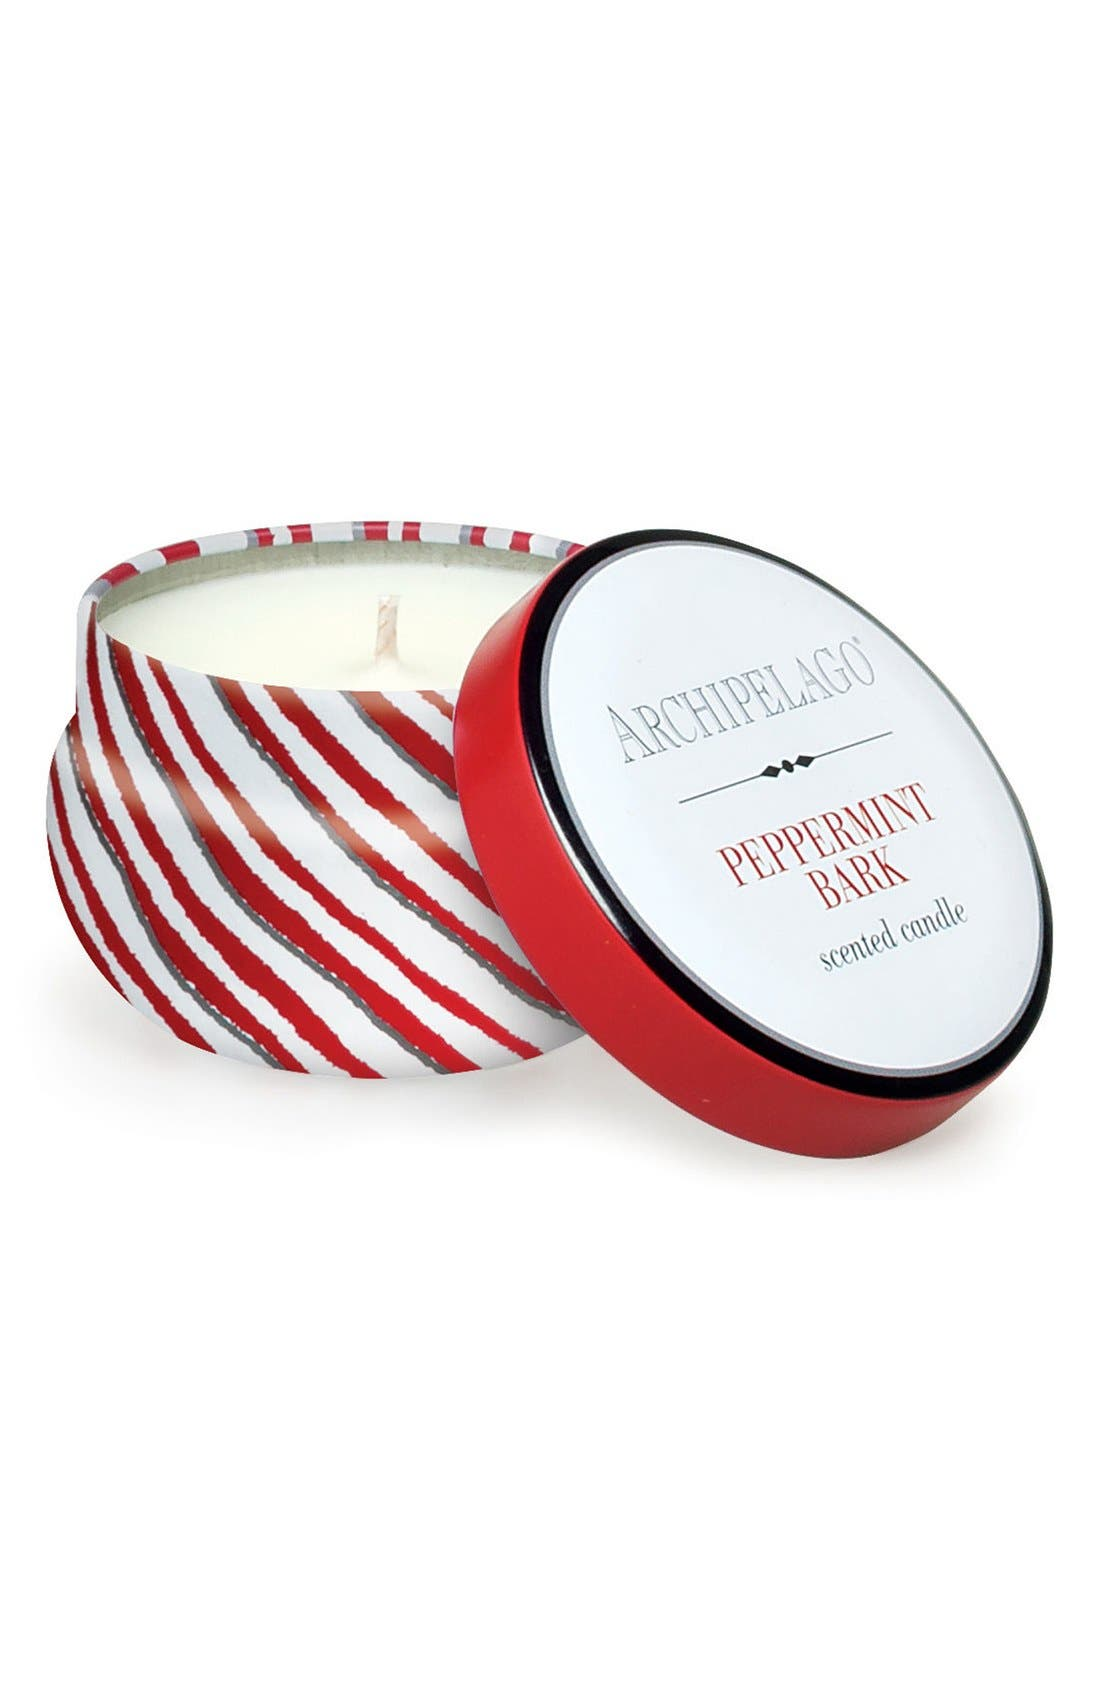 Archipelago Botanicals Peppermint Bark Scented Candle